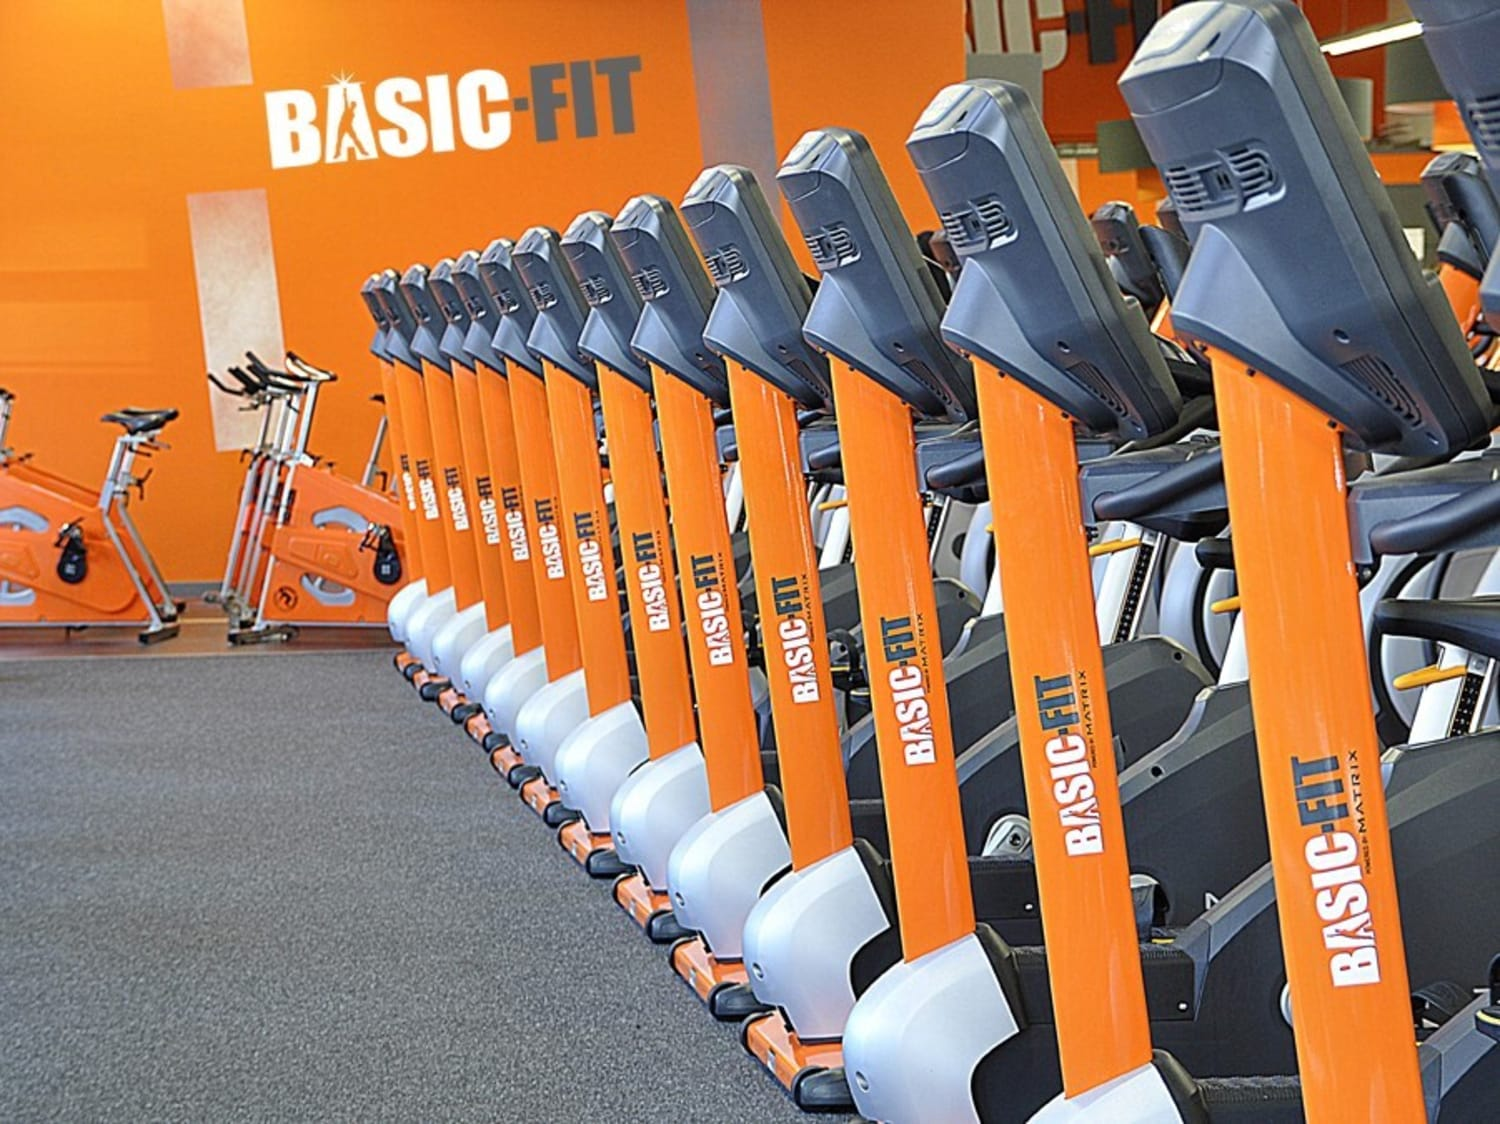 A row of bikes in a Basic Fit gym